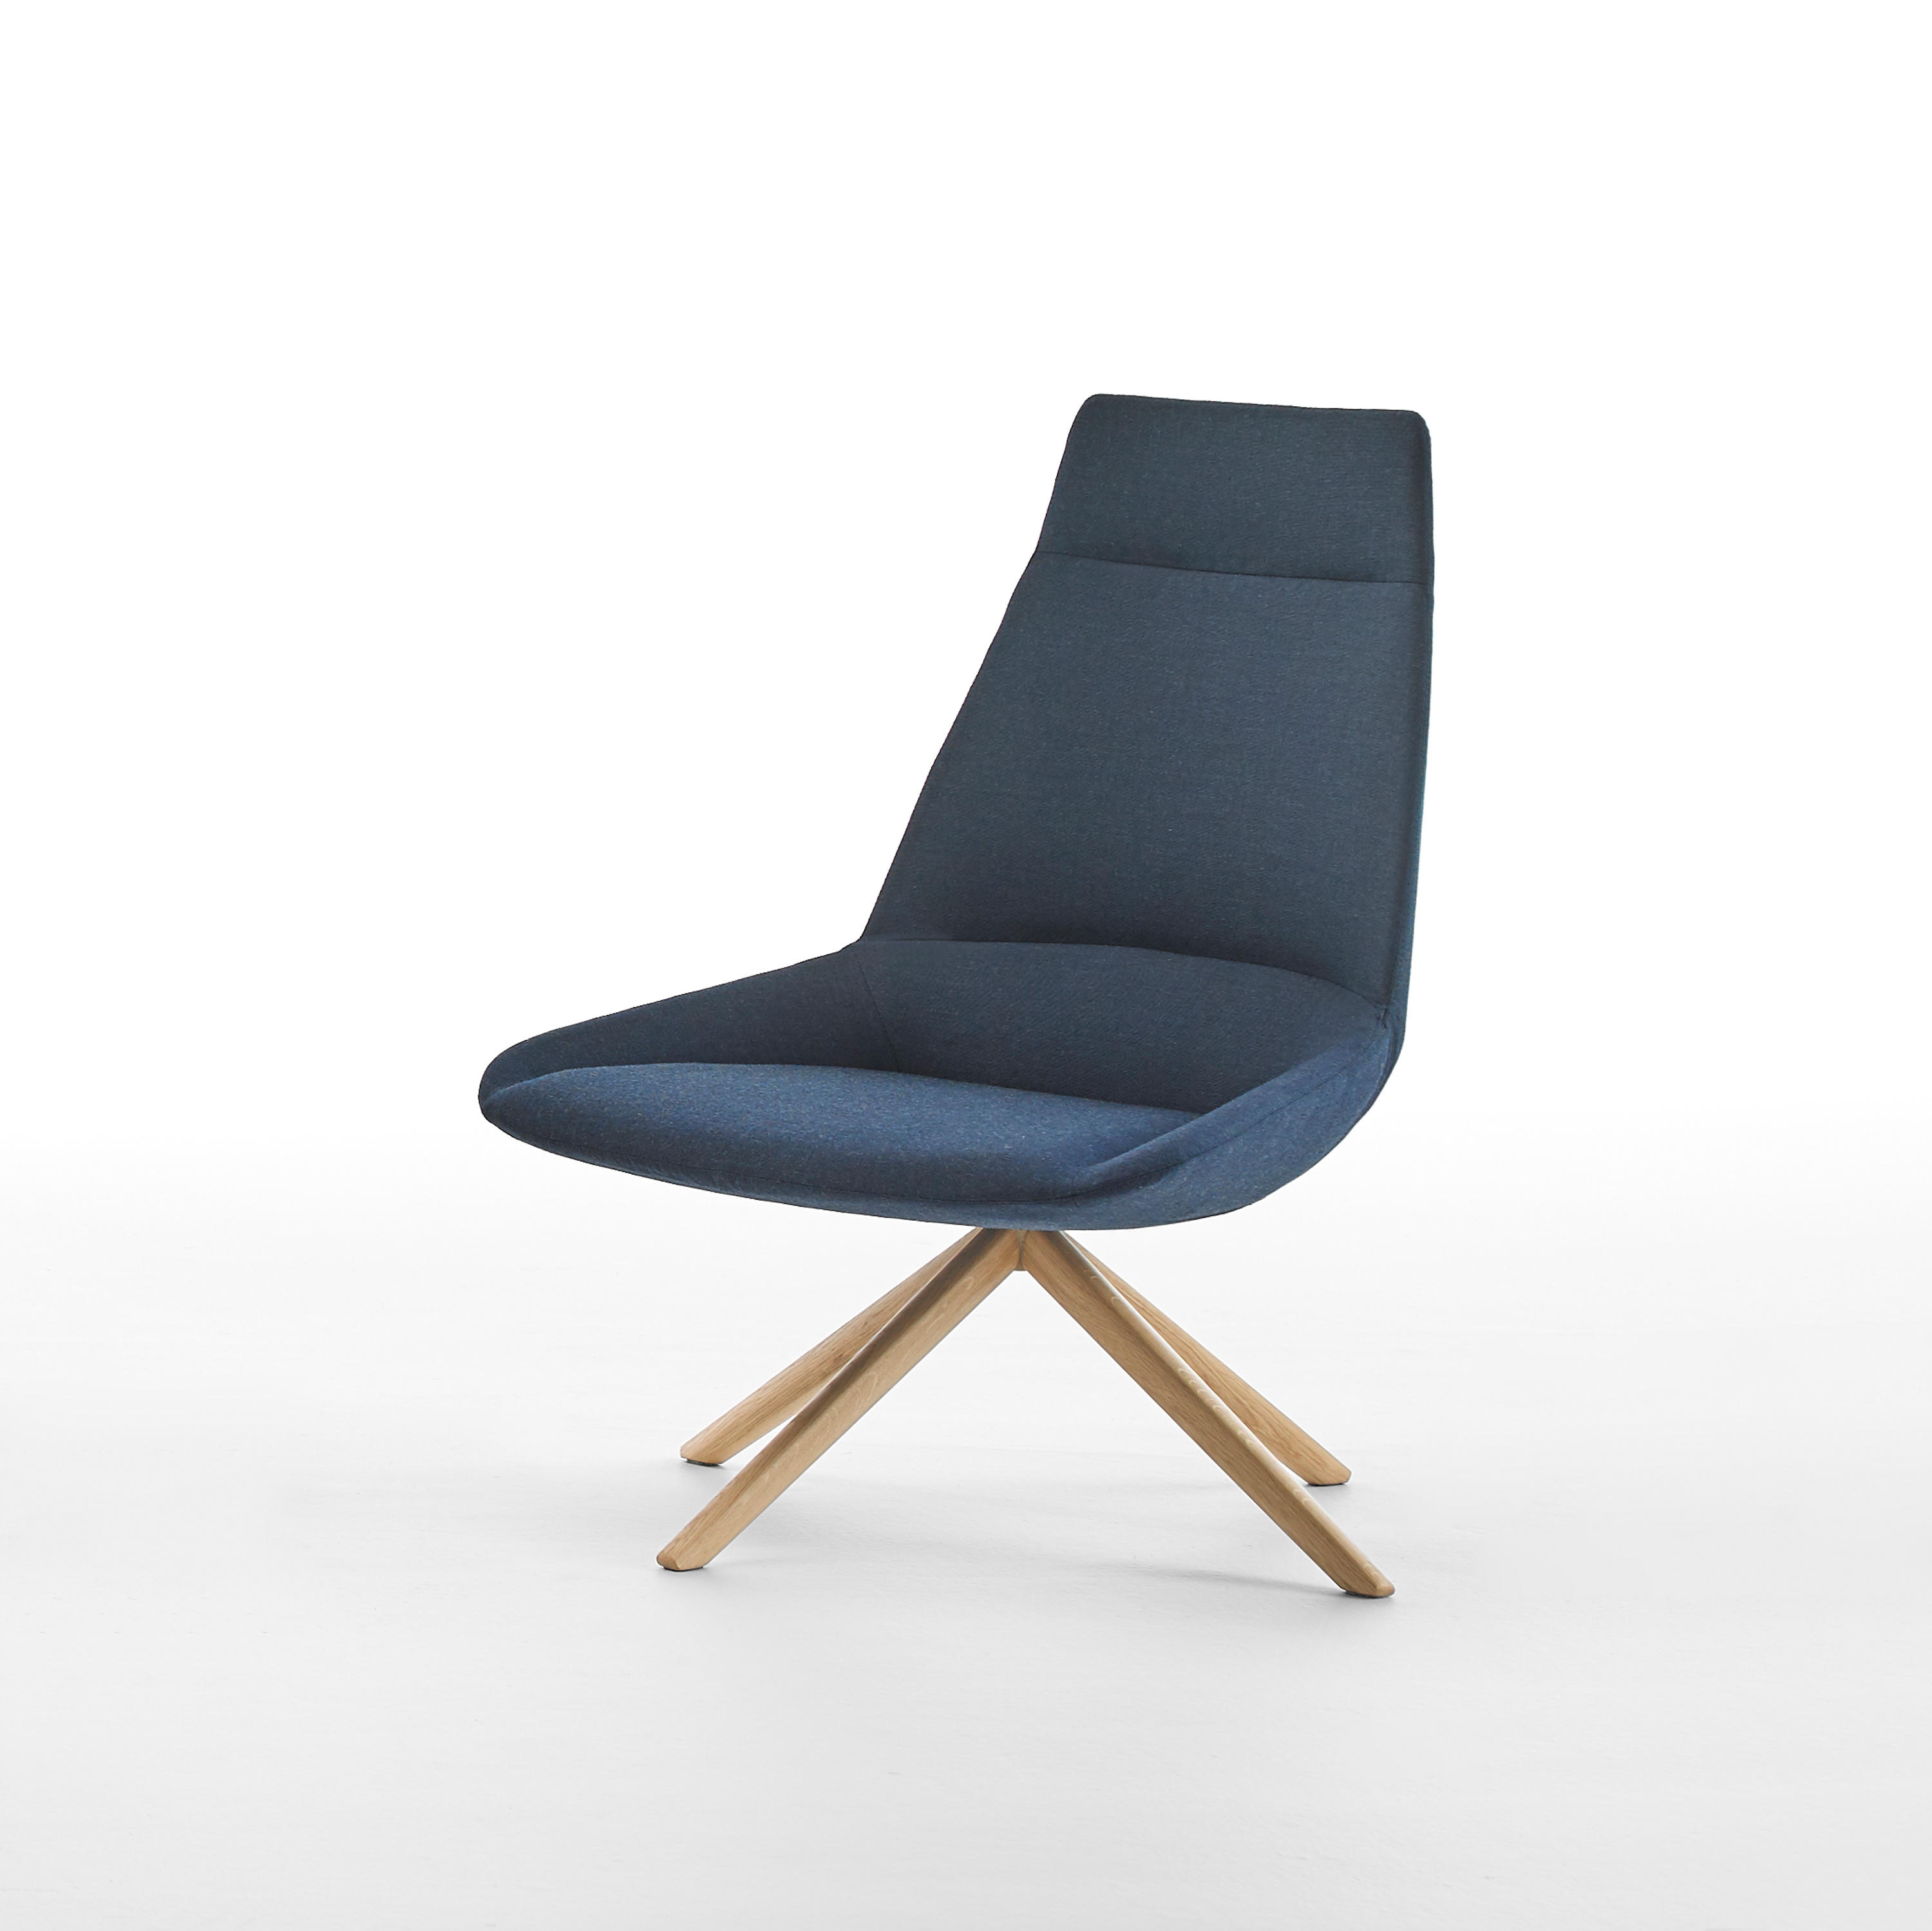 inclass 2 Inclass designed and manufactured in spain, the inclass collection typifies the avant guard creativity of some of europe's greatest designers, including jorge pensi and ramon esteve manufactured to exacting standards the inclass collection combines style, durability and originality.